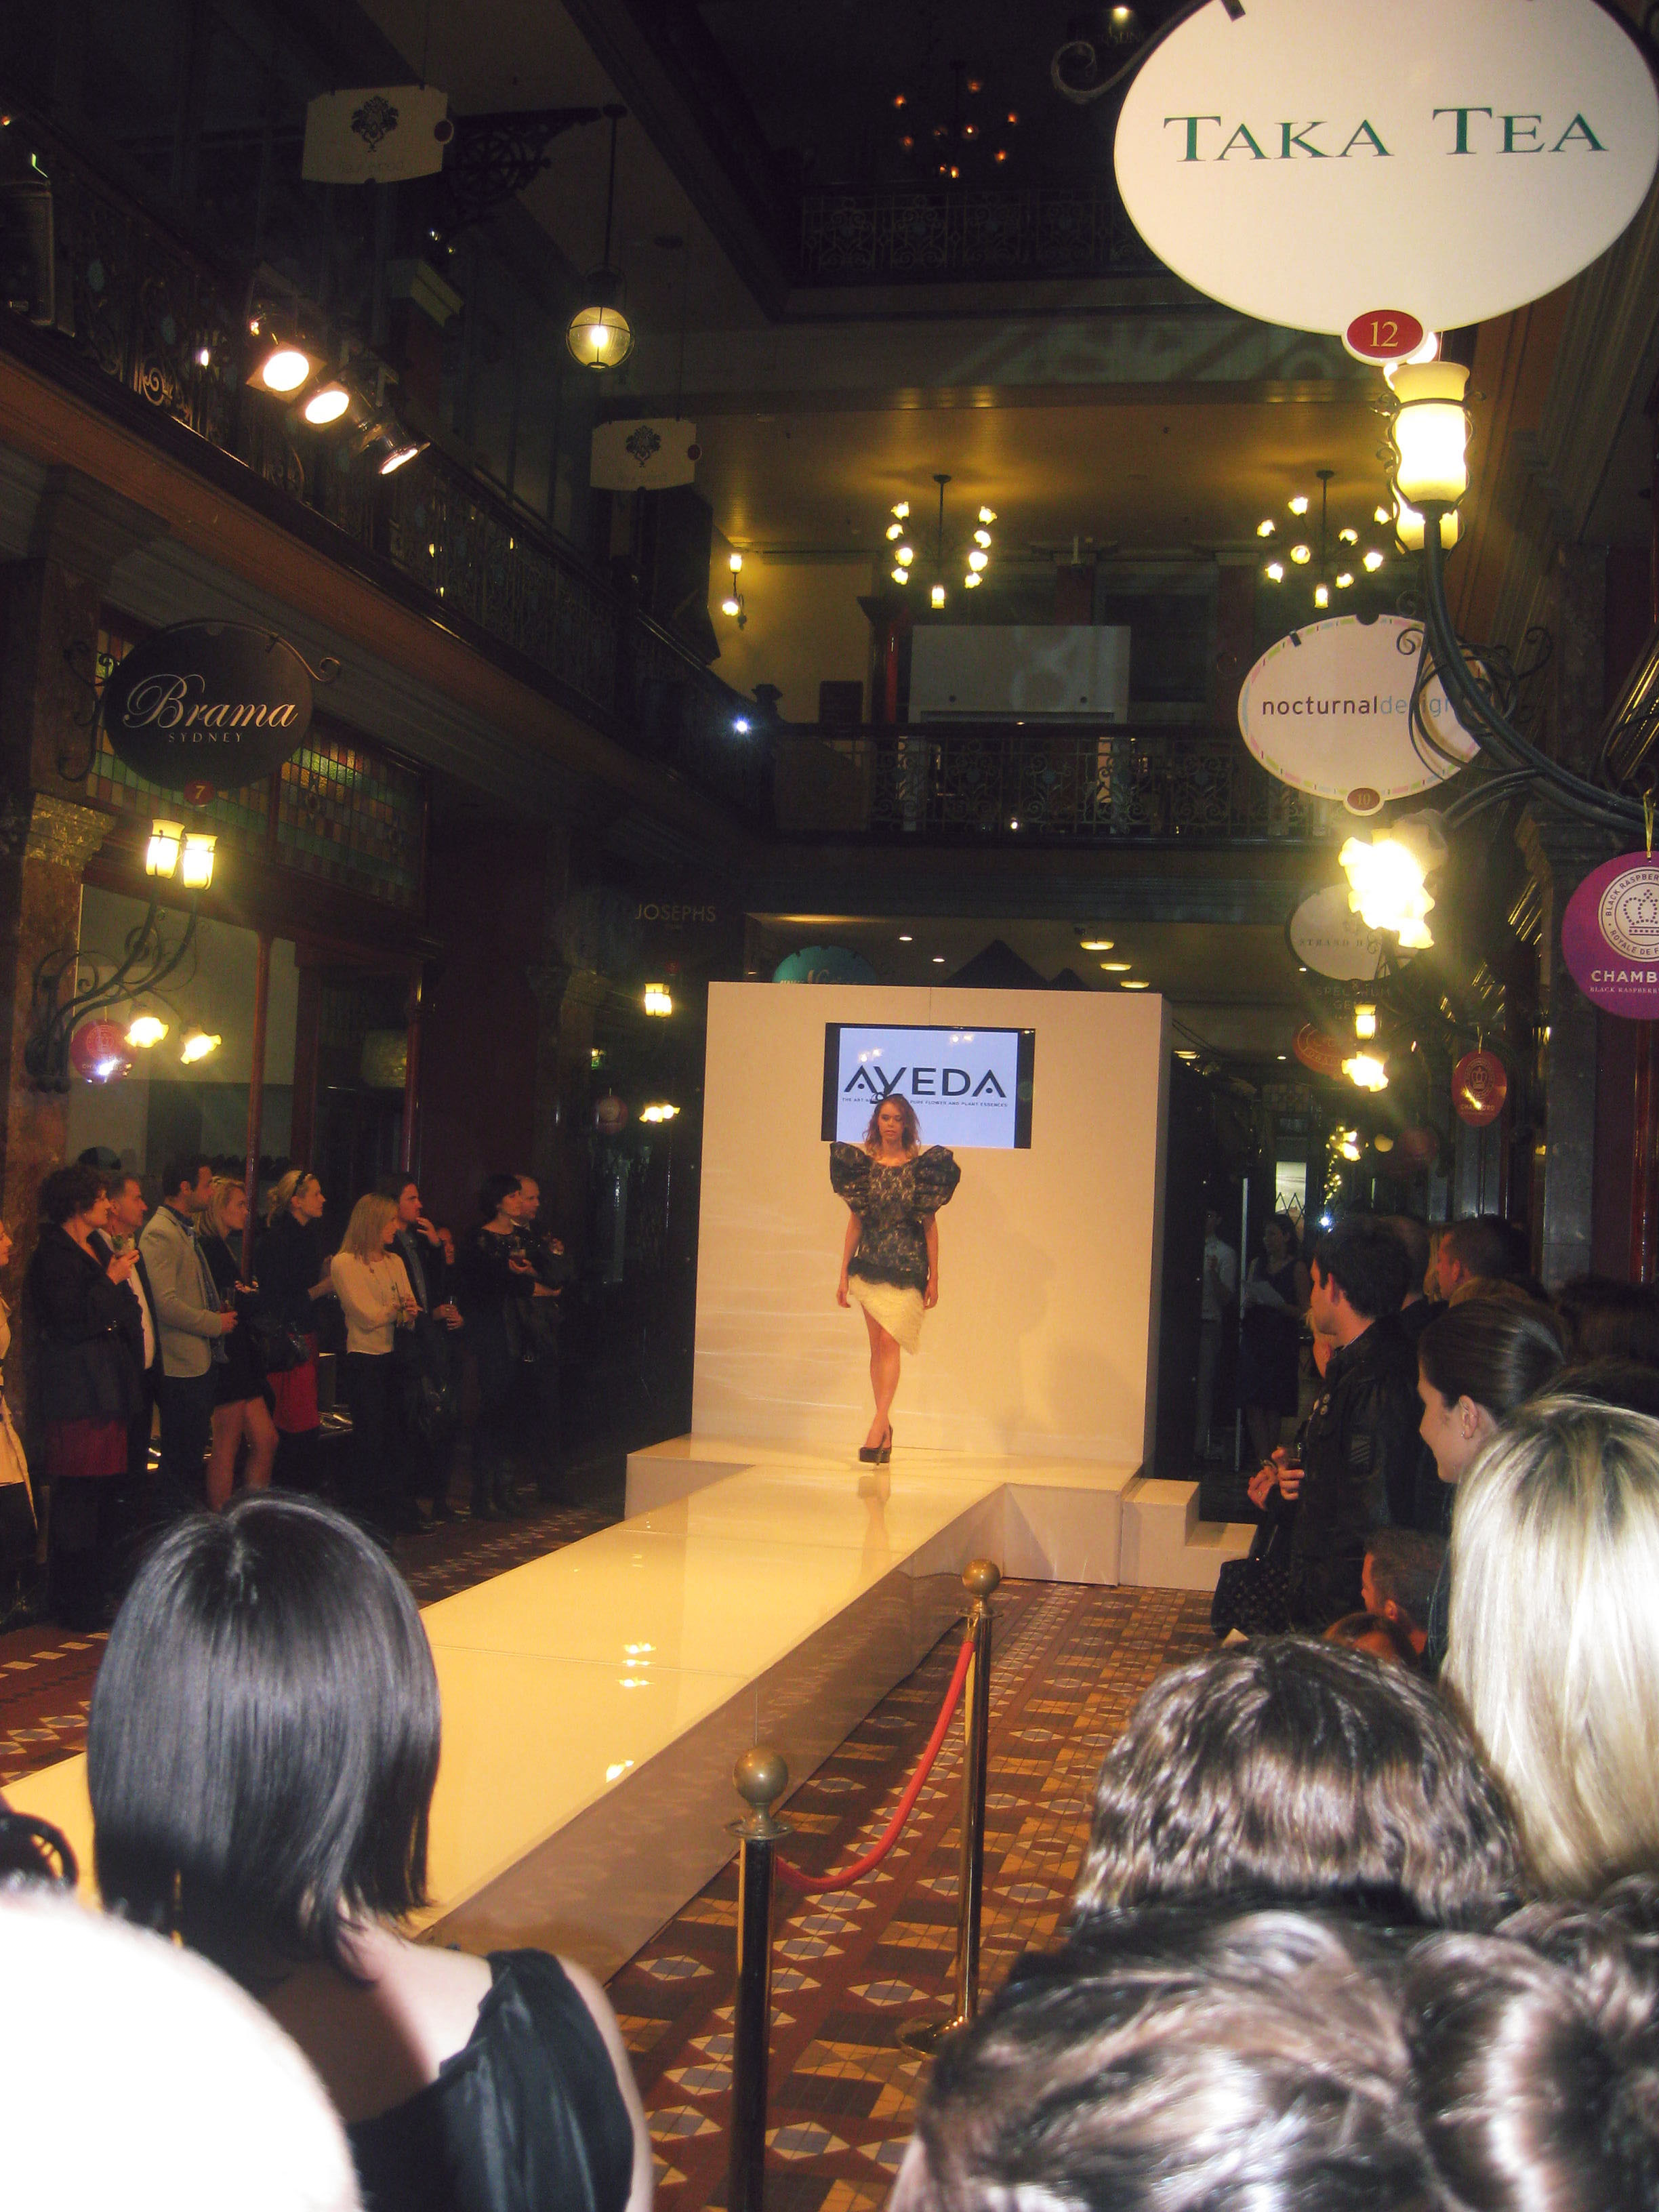 A model walks down the catwalk wearing a black and white patterned dress with huge ruffled shoulders.